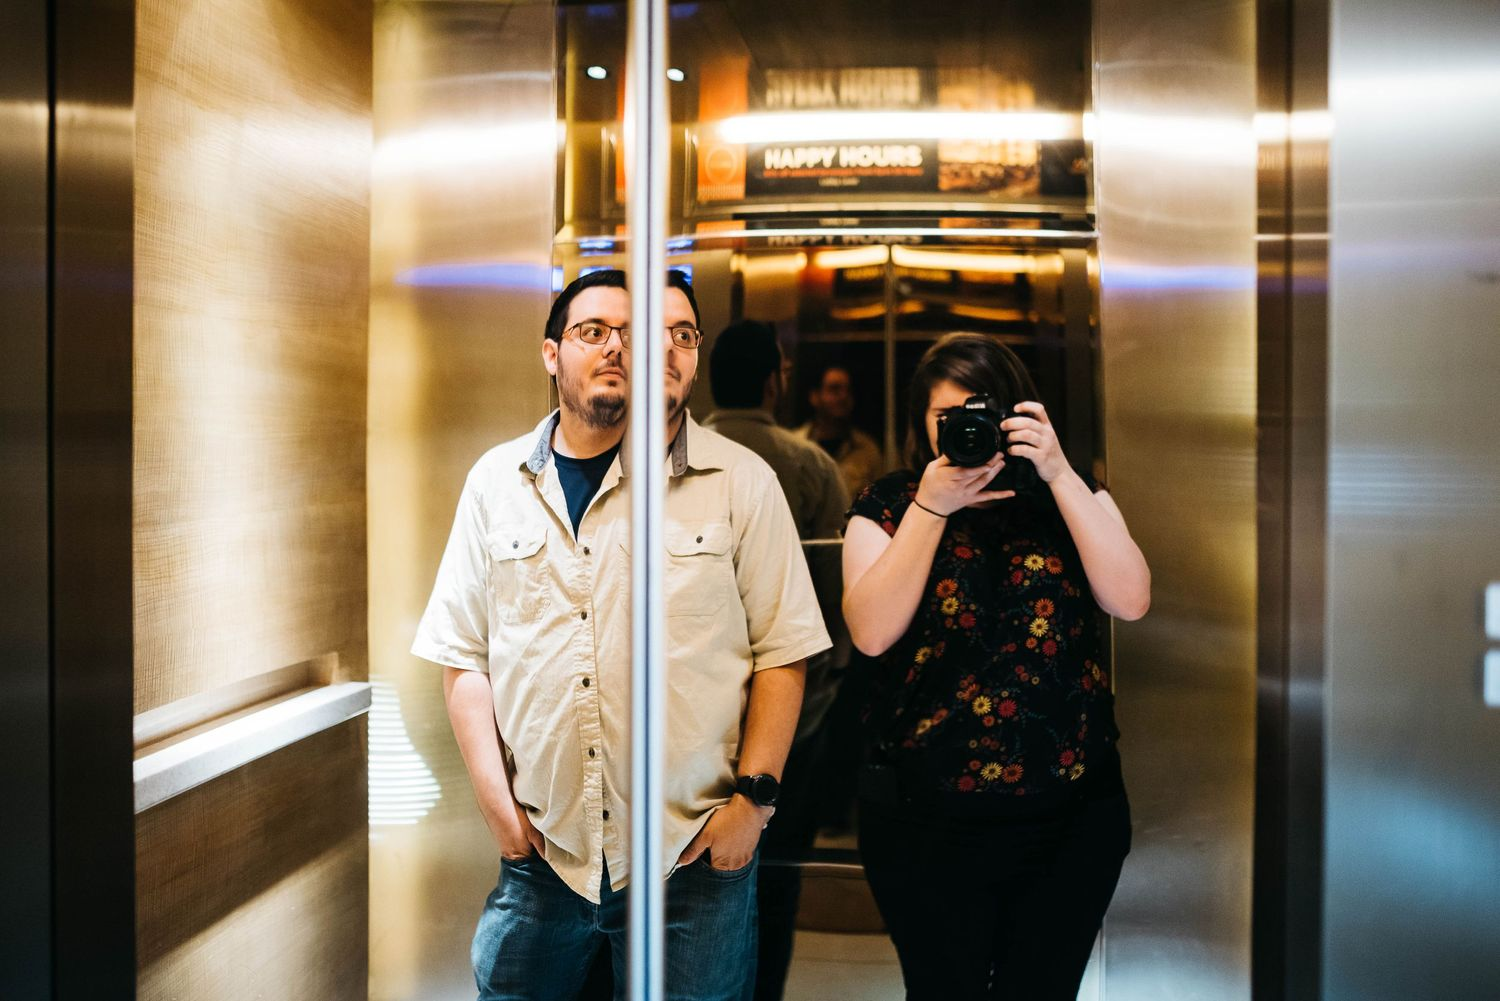 Taylor Moore of Taylor Moore Portraiture with her boyfriend in an elevator in Kuala Lumpur